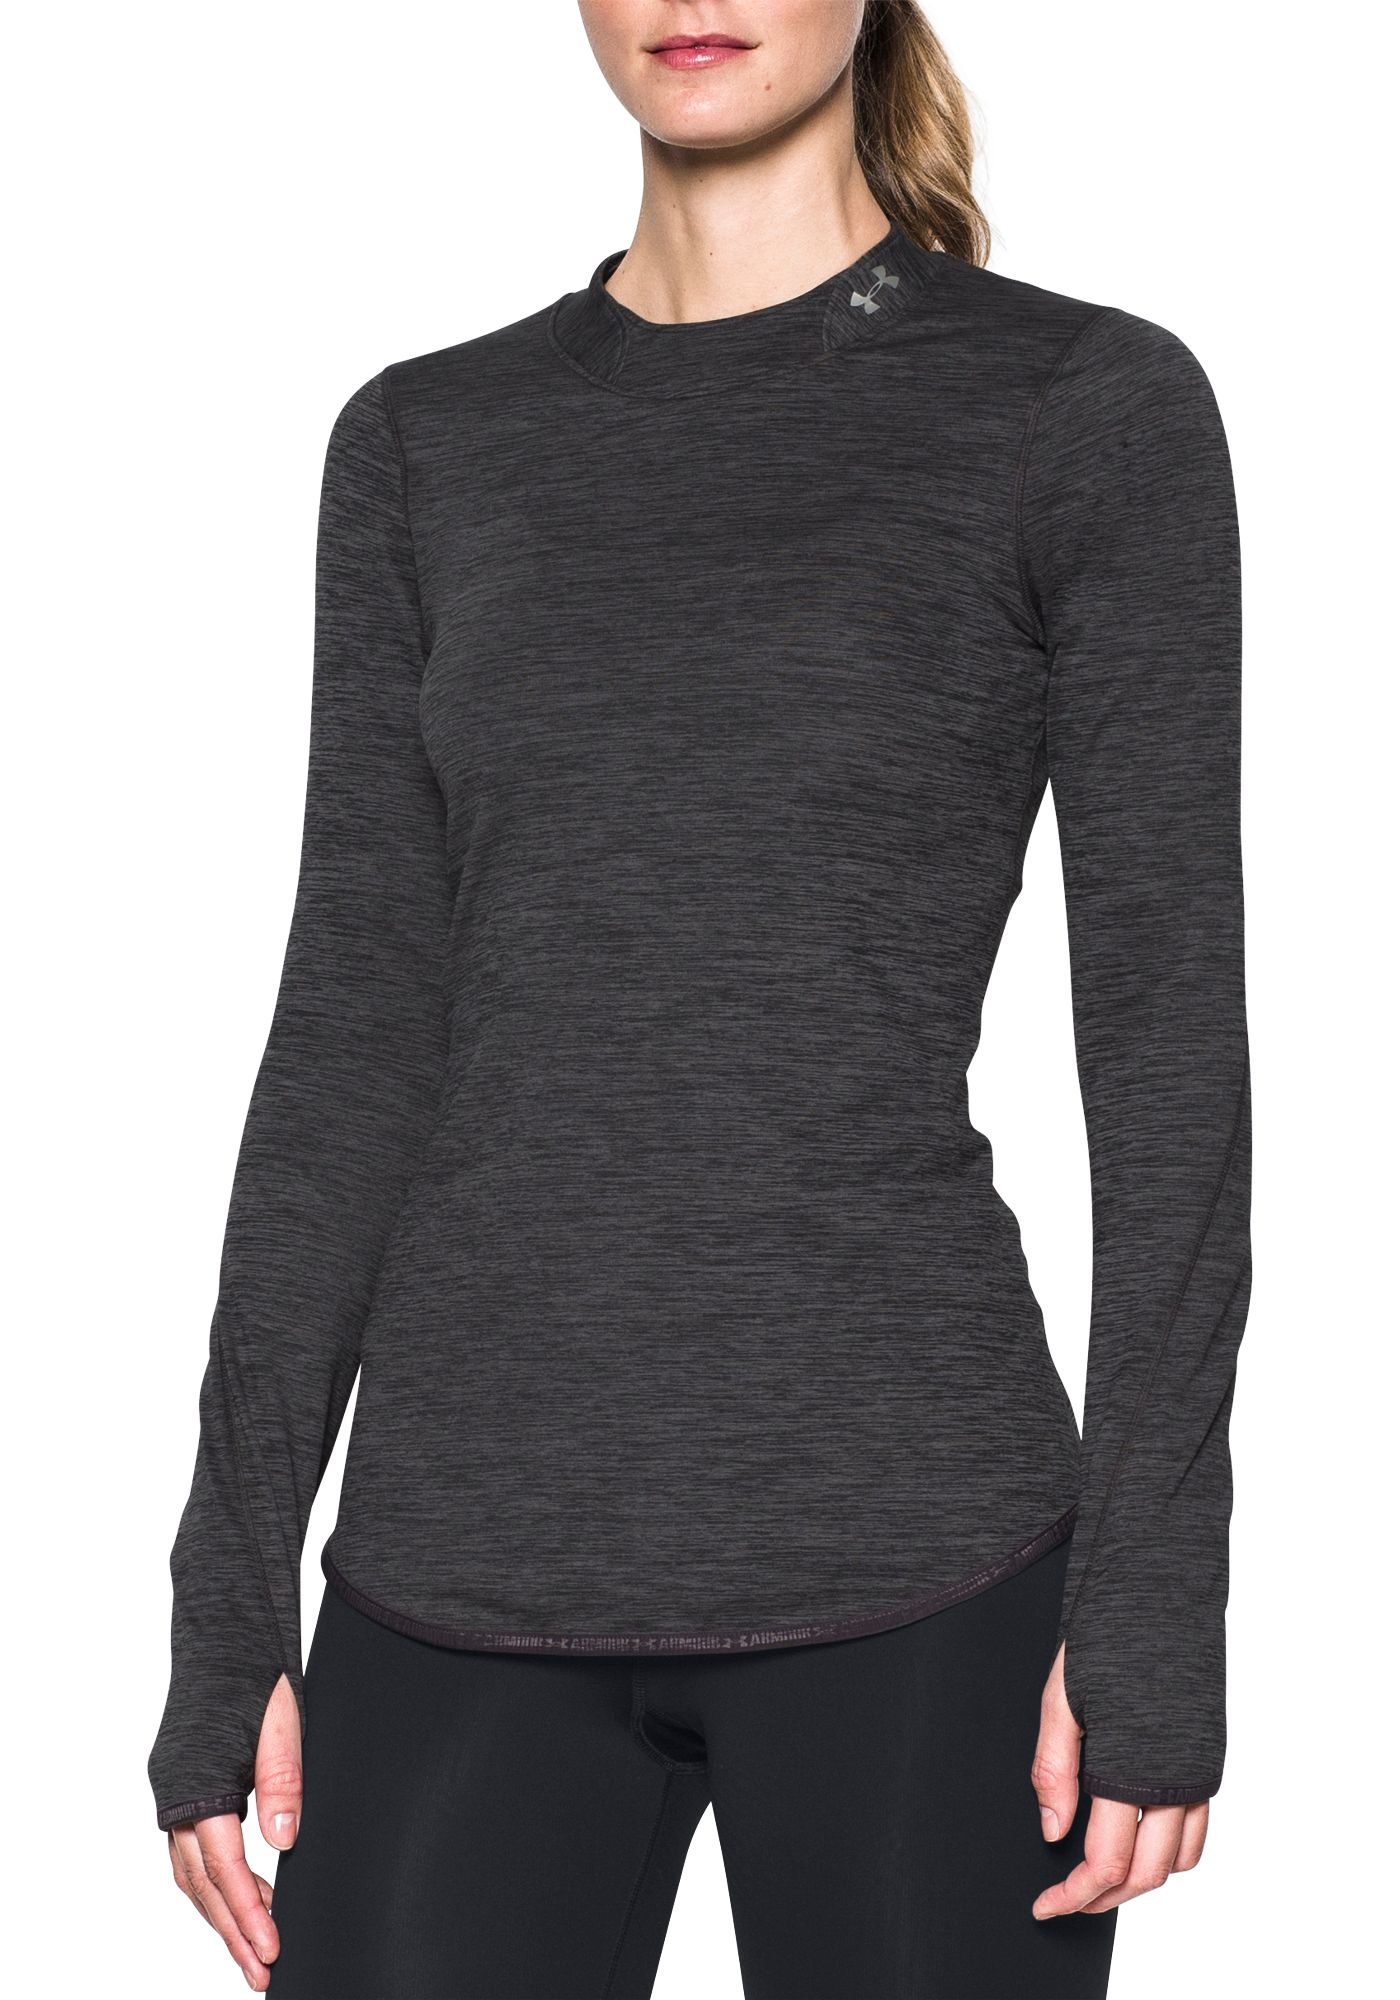 Under Armour Women's ColdGear Fitted Mock Neck Long Sleeve Shirt